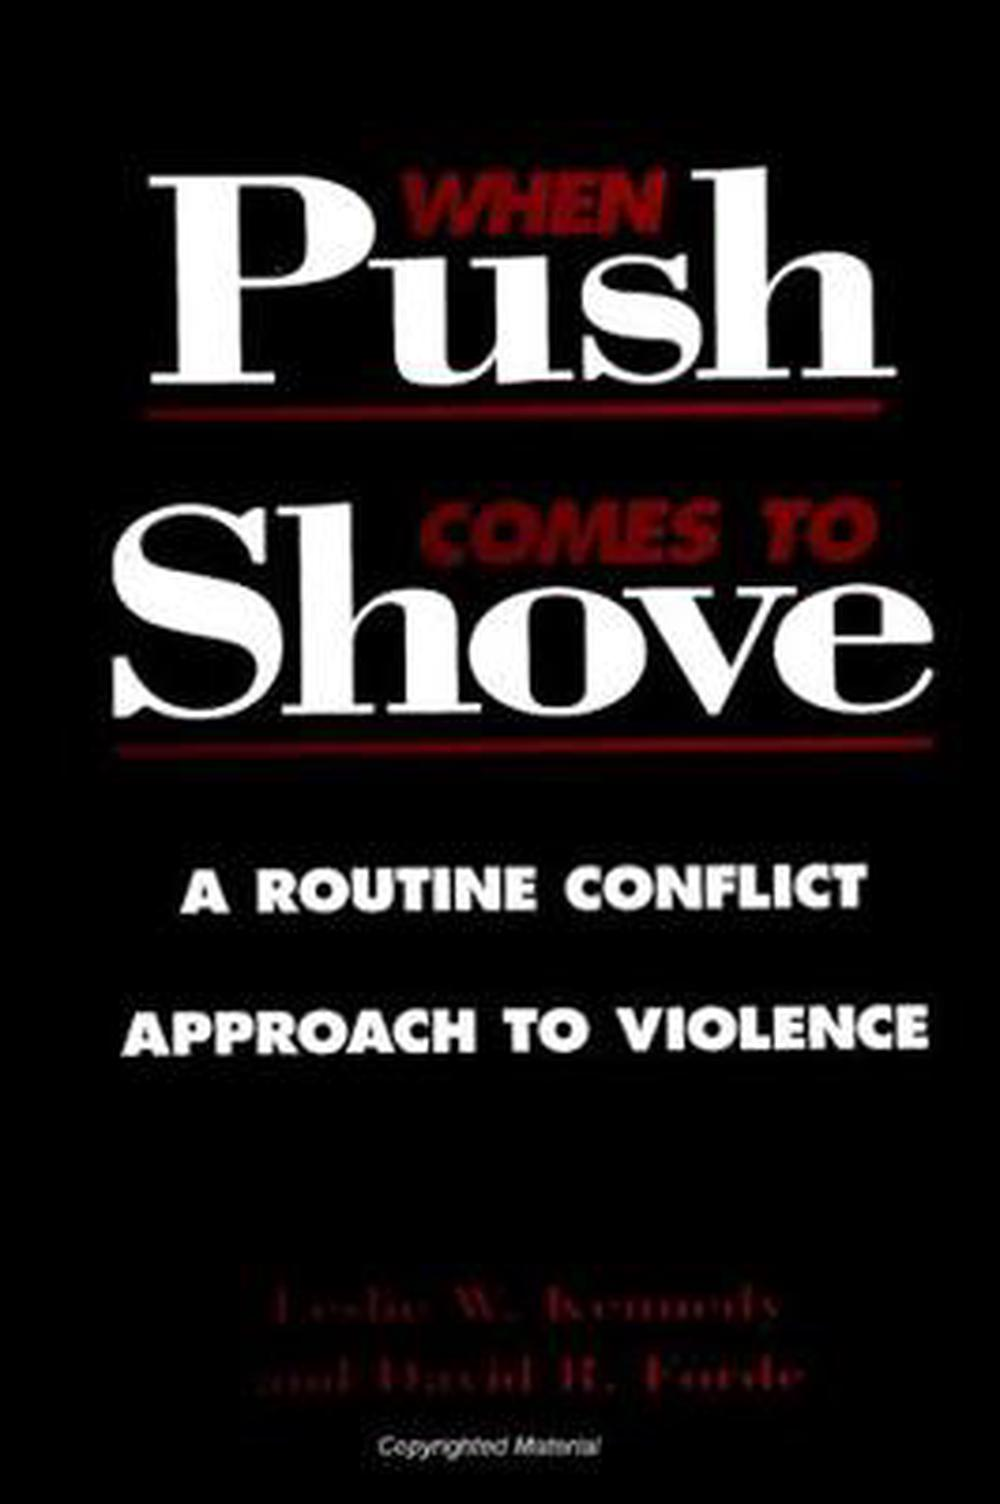 When Push Comes To Shove